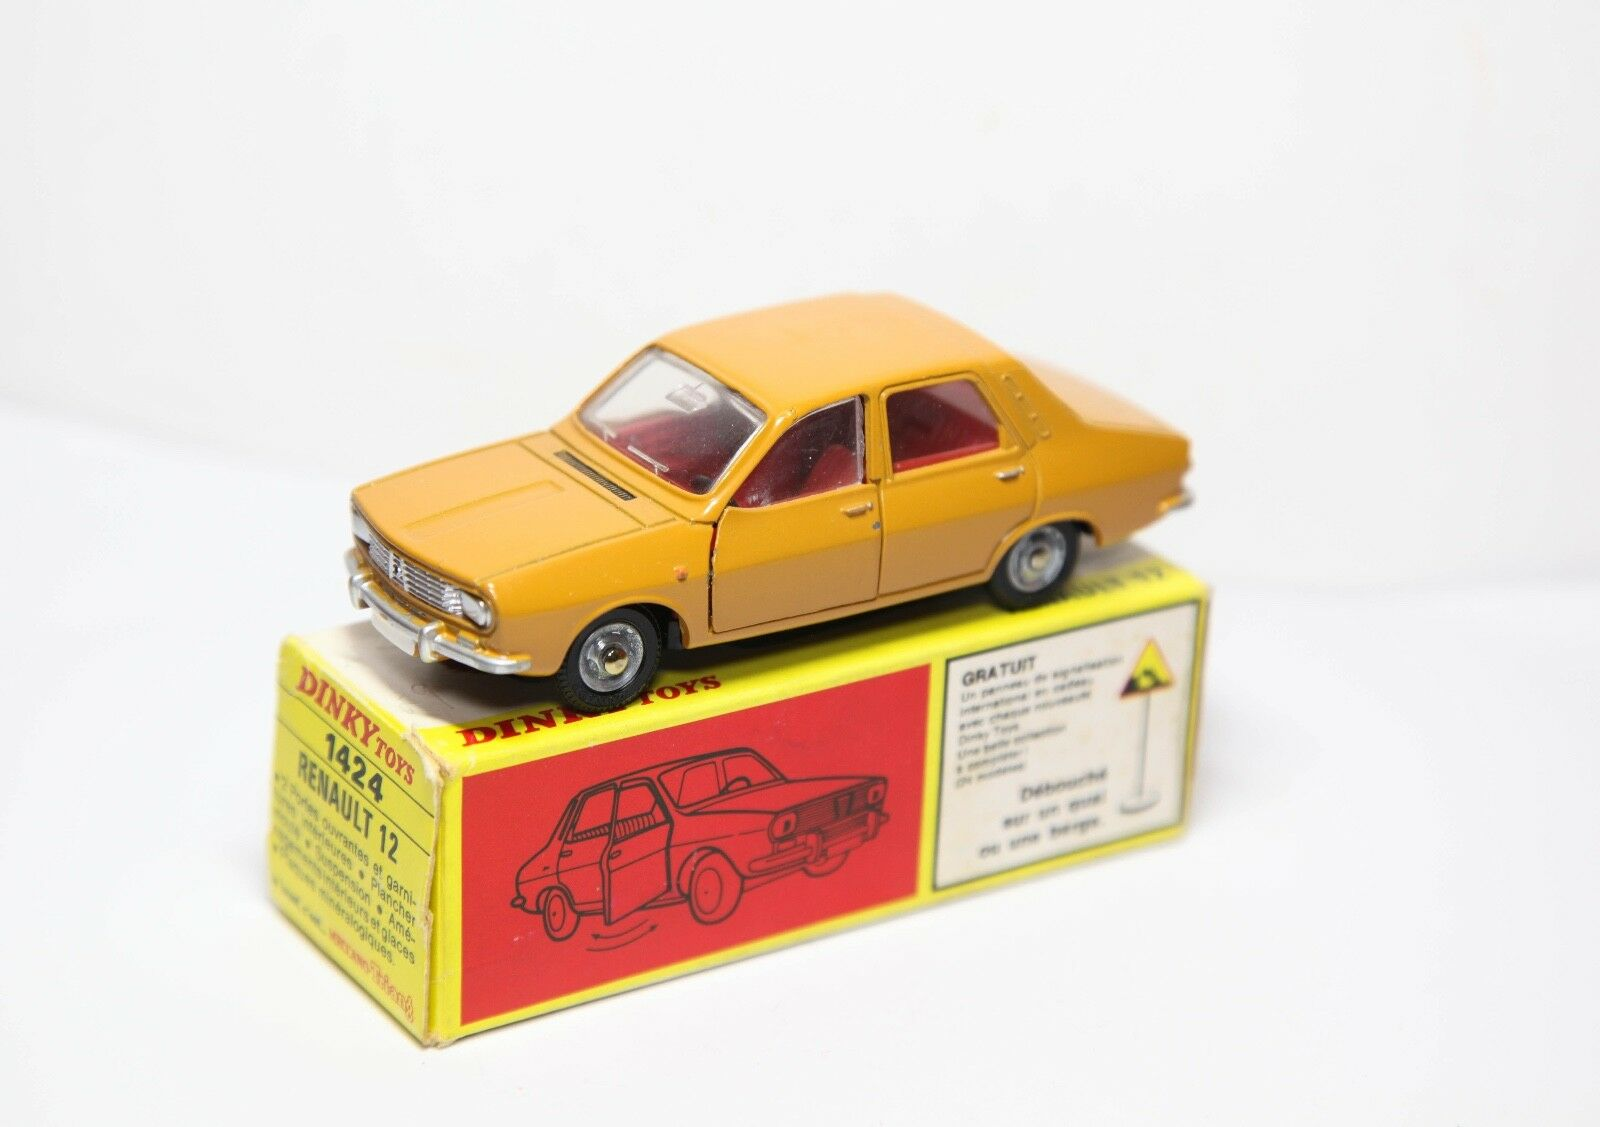 French Dinky 1424 Renault 12 In Original Box - Near Mint Vintage Original Old